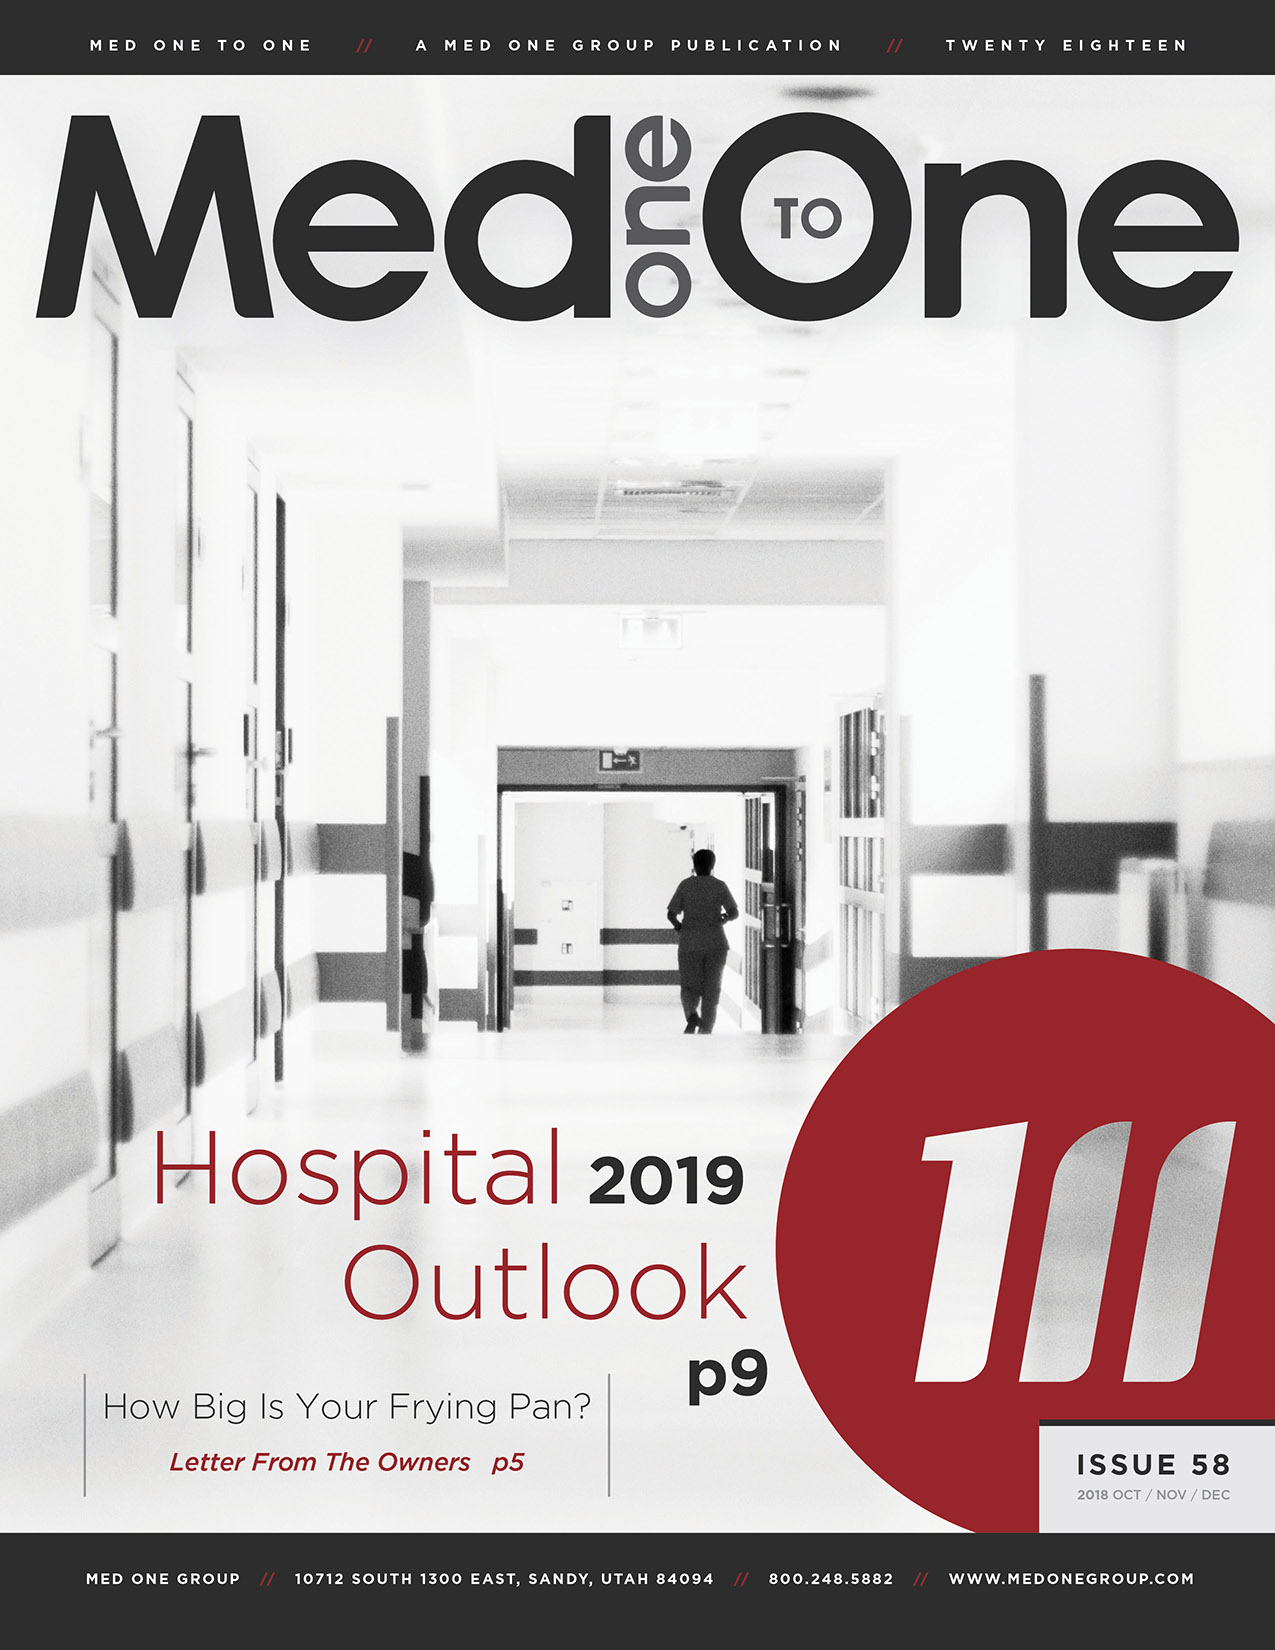 Med One to One Number 58 Cover